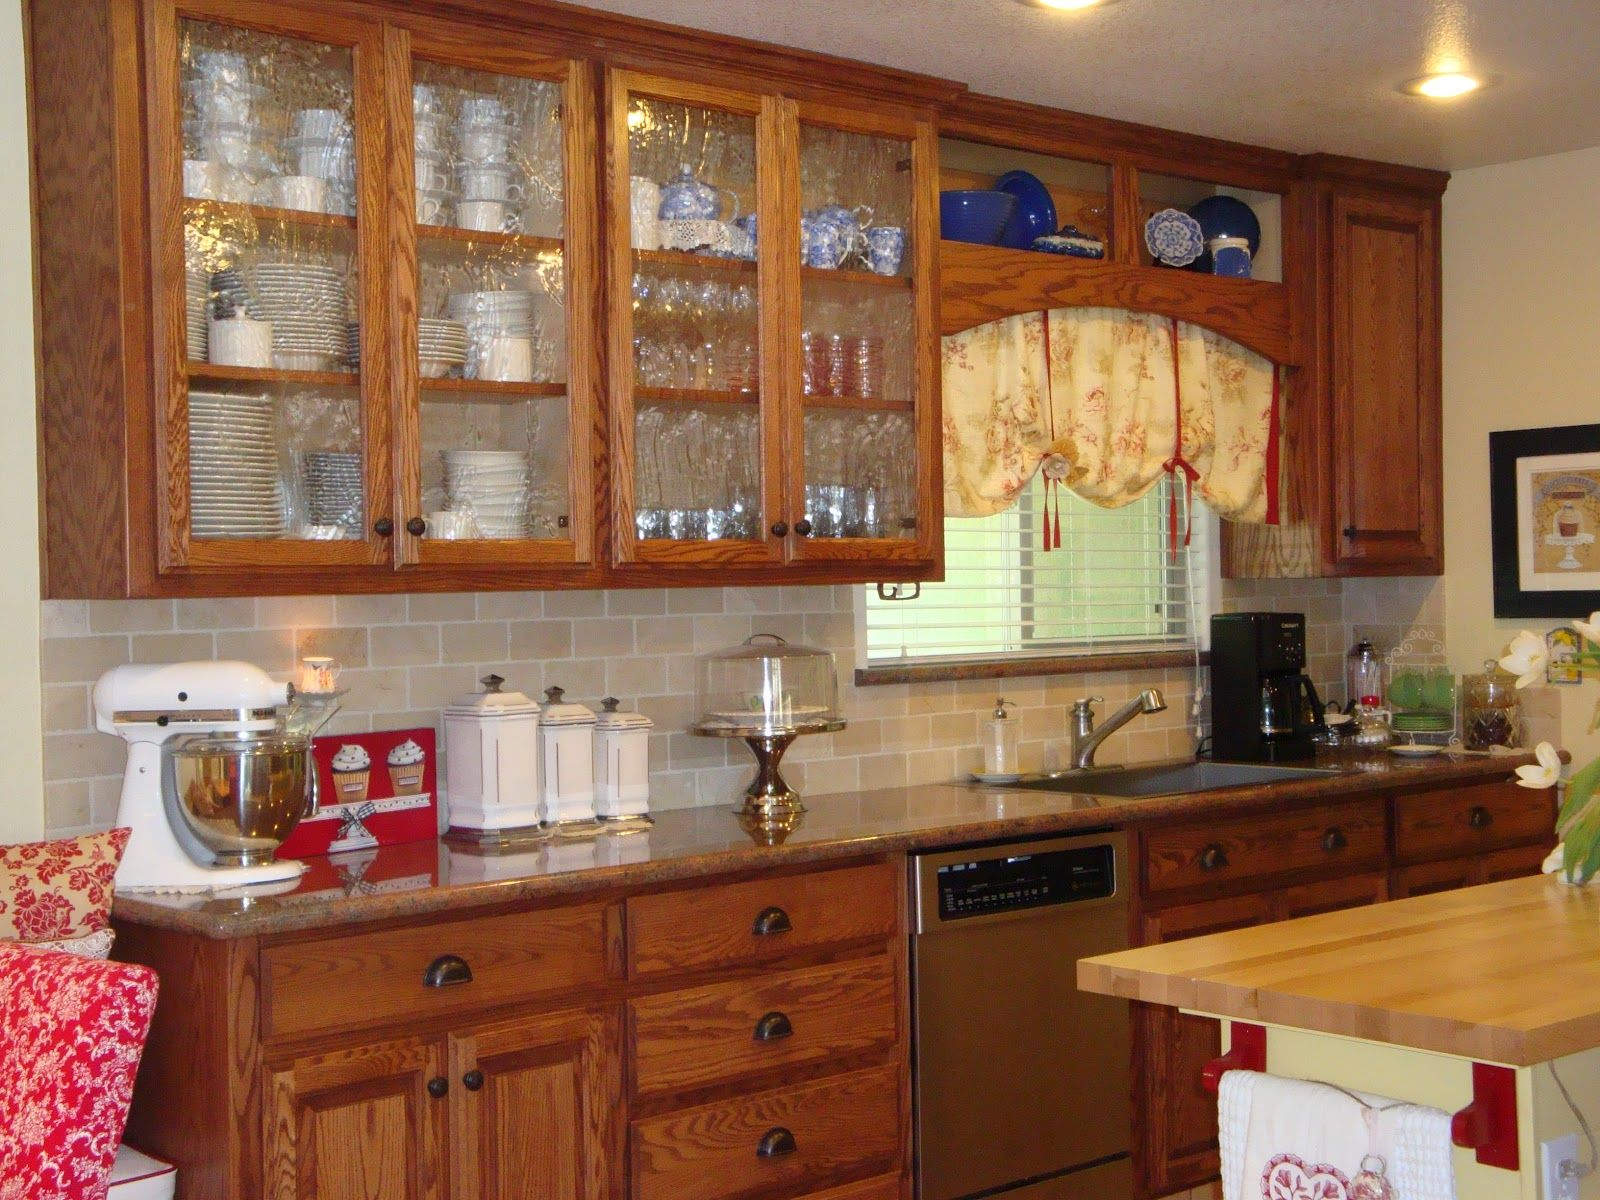 Image Result For Oak And Iron Kitchen Designs Glass Kitchen Cabinet Doors Glass Kitchen Cabinets Glass Fronted Kitchen Cabinets